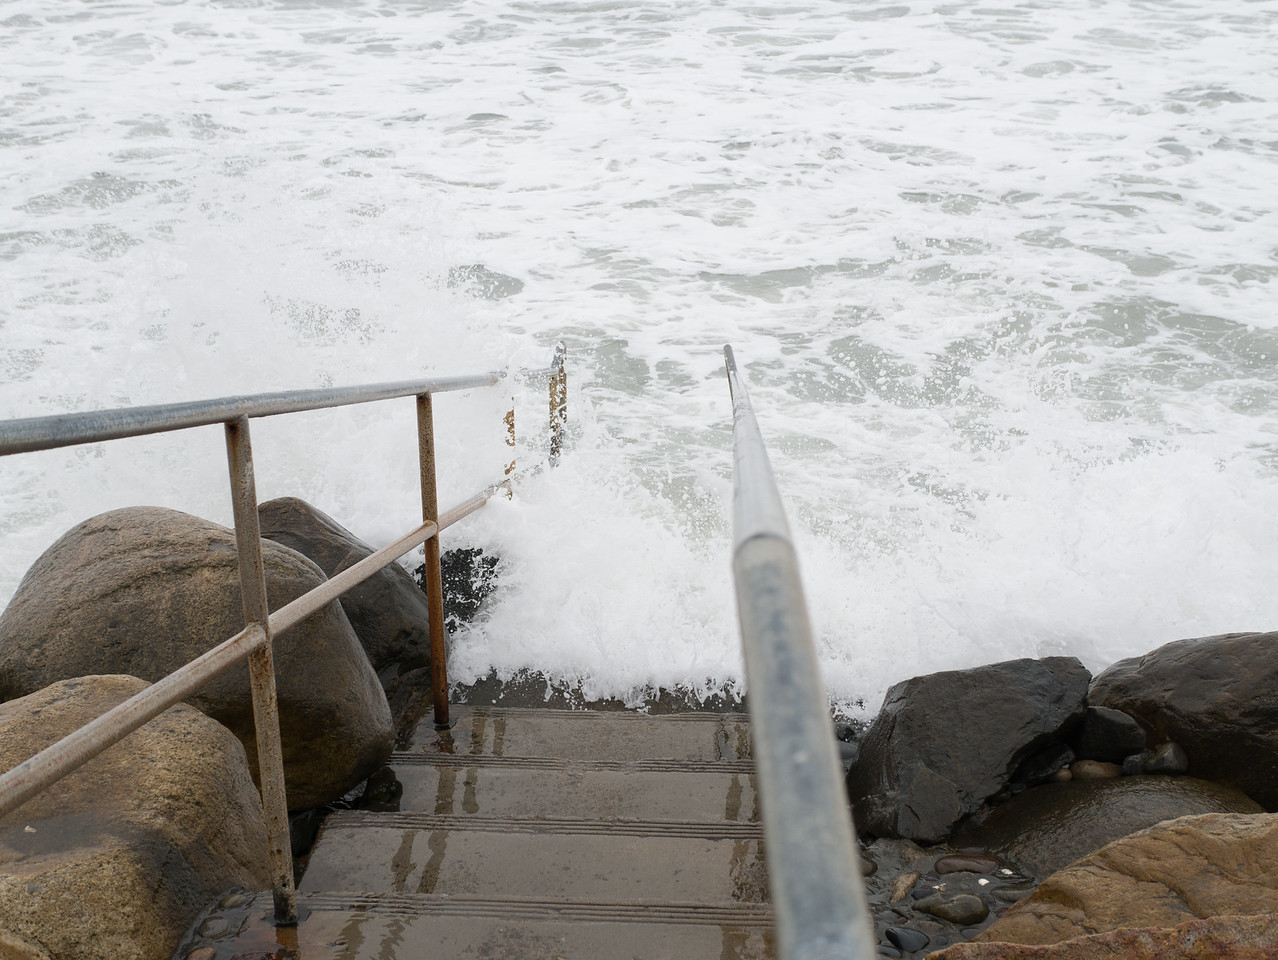 Used to be stairs to the beach, now stairs into the ocean